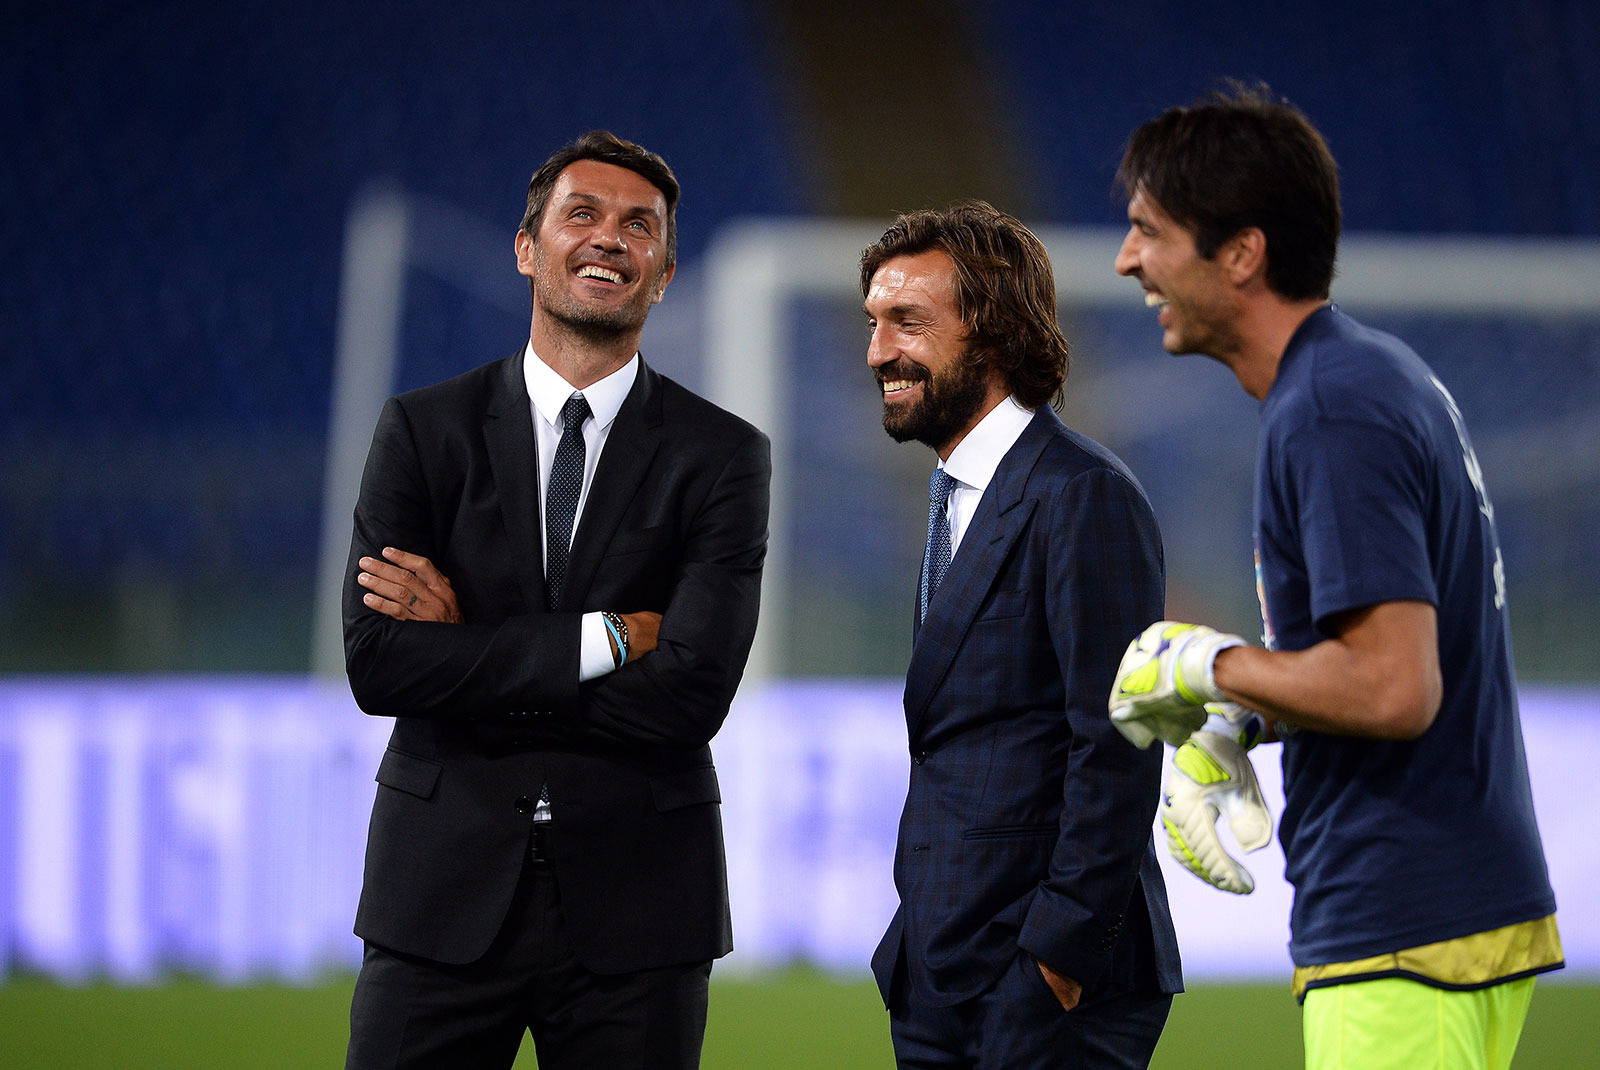 Paolo Maldini, Andrea Pirlo and Gianluigi Buffon during the 'Match for Peace' game at Stadio Olimpico. (FILIPPO MONTEFORTE/AFP/Getty Images)